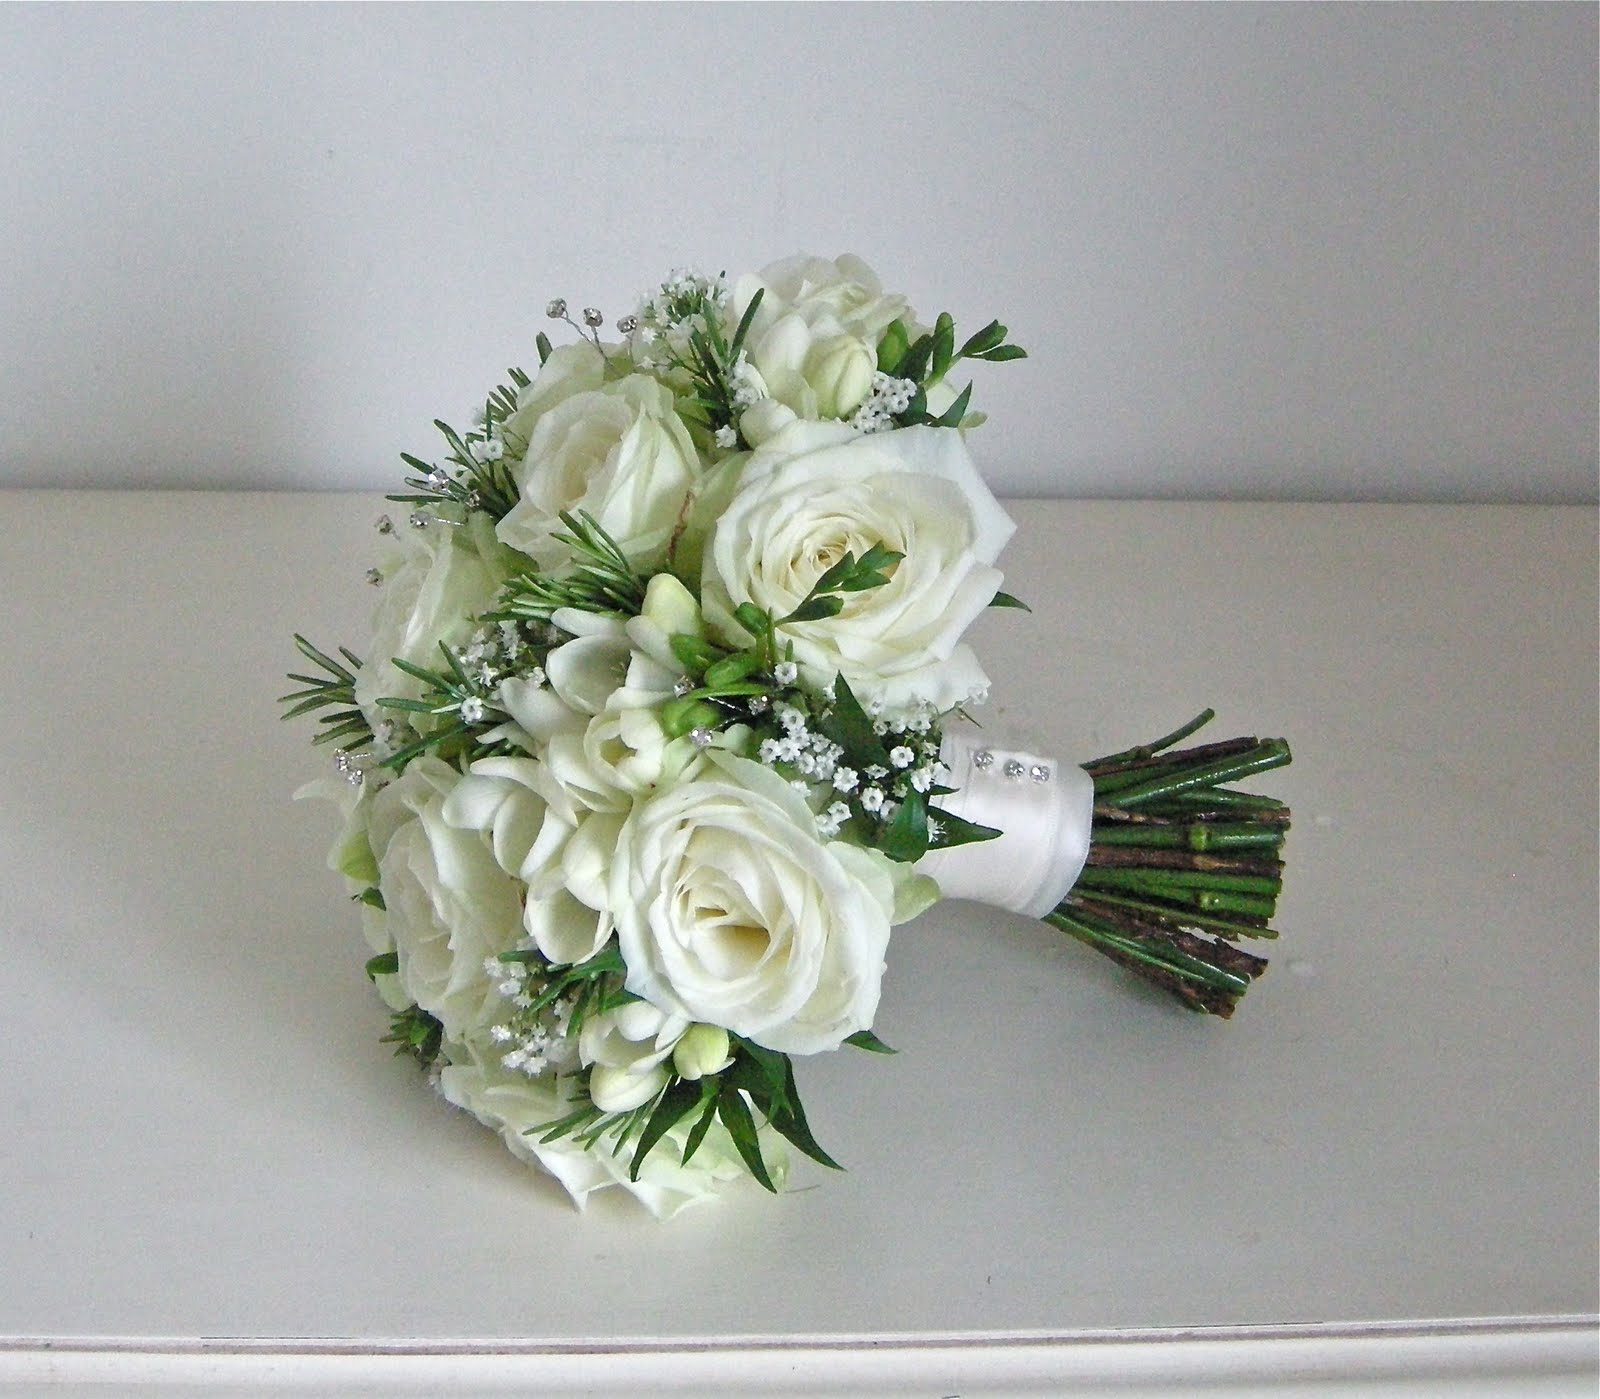 Wedding flowers blog emma 39 s green and white wedding flowers burley manor - Flowers good luck bridal bouquet ...